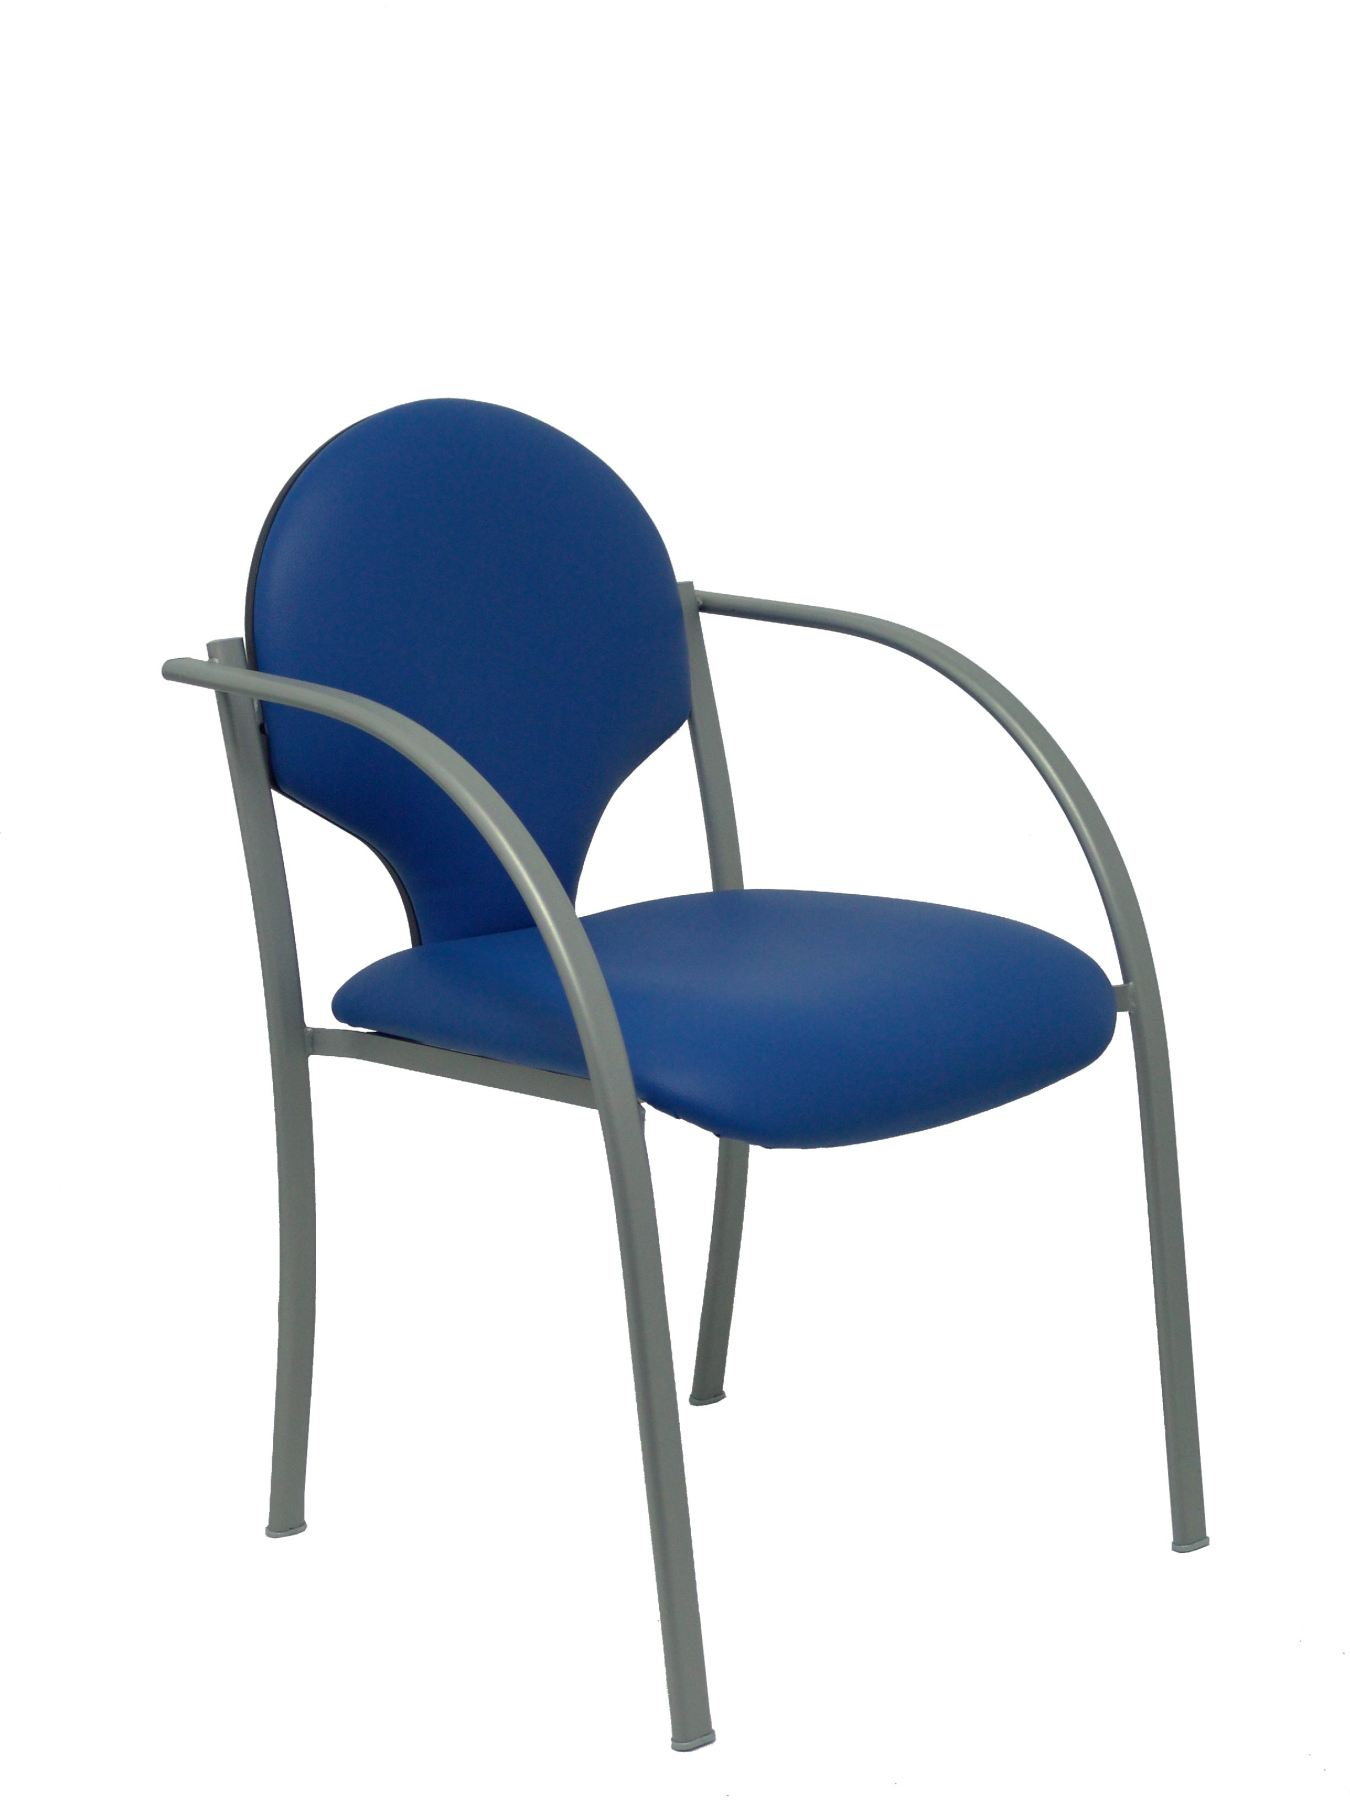 2 Pack Confident Chairs Ergonomics Fixed Arms Built-in Stackable, Seat And Backrest Cushion Piqueras And